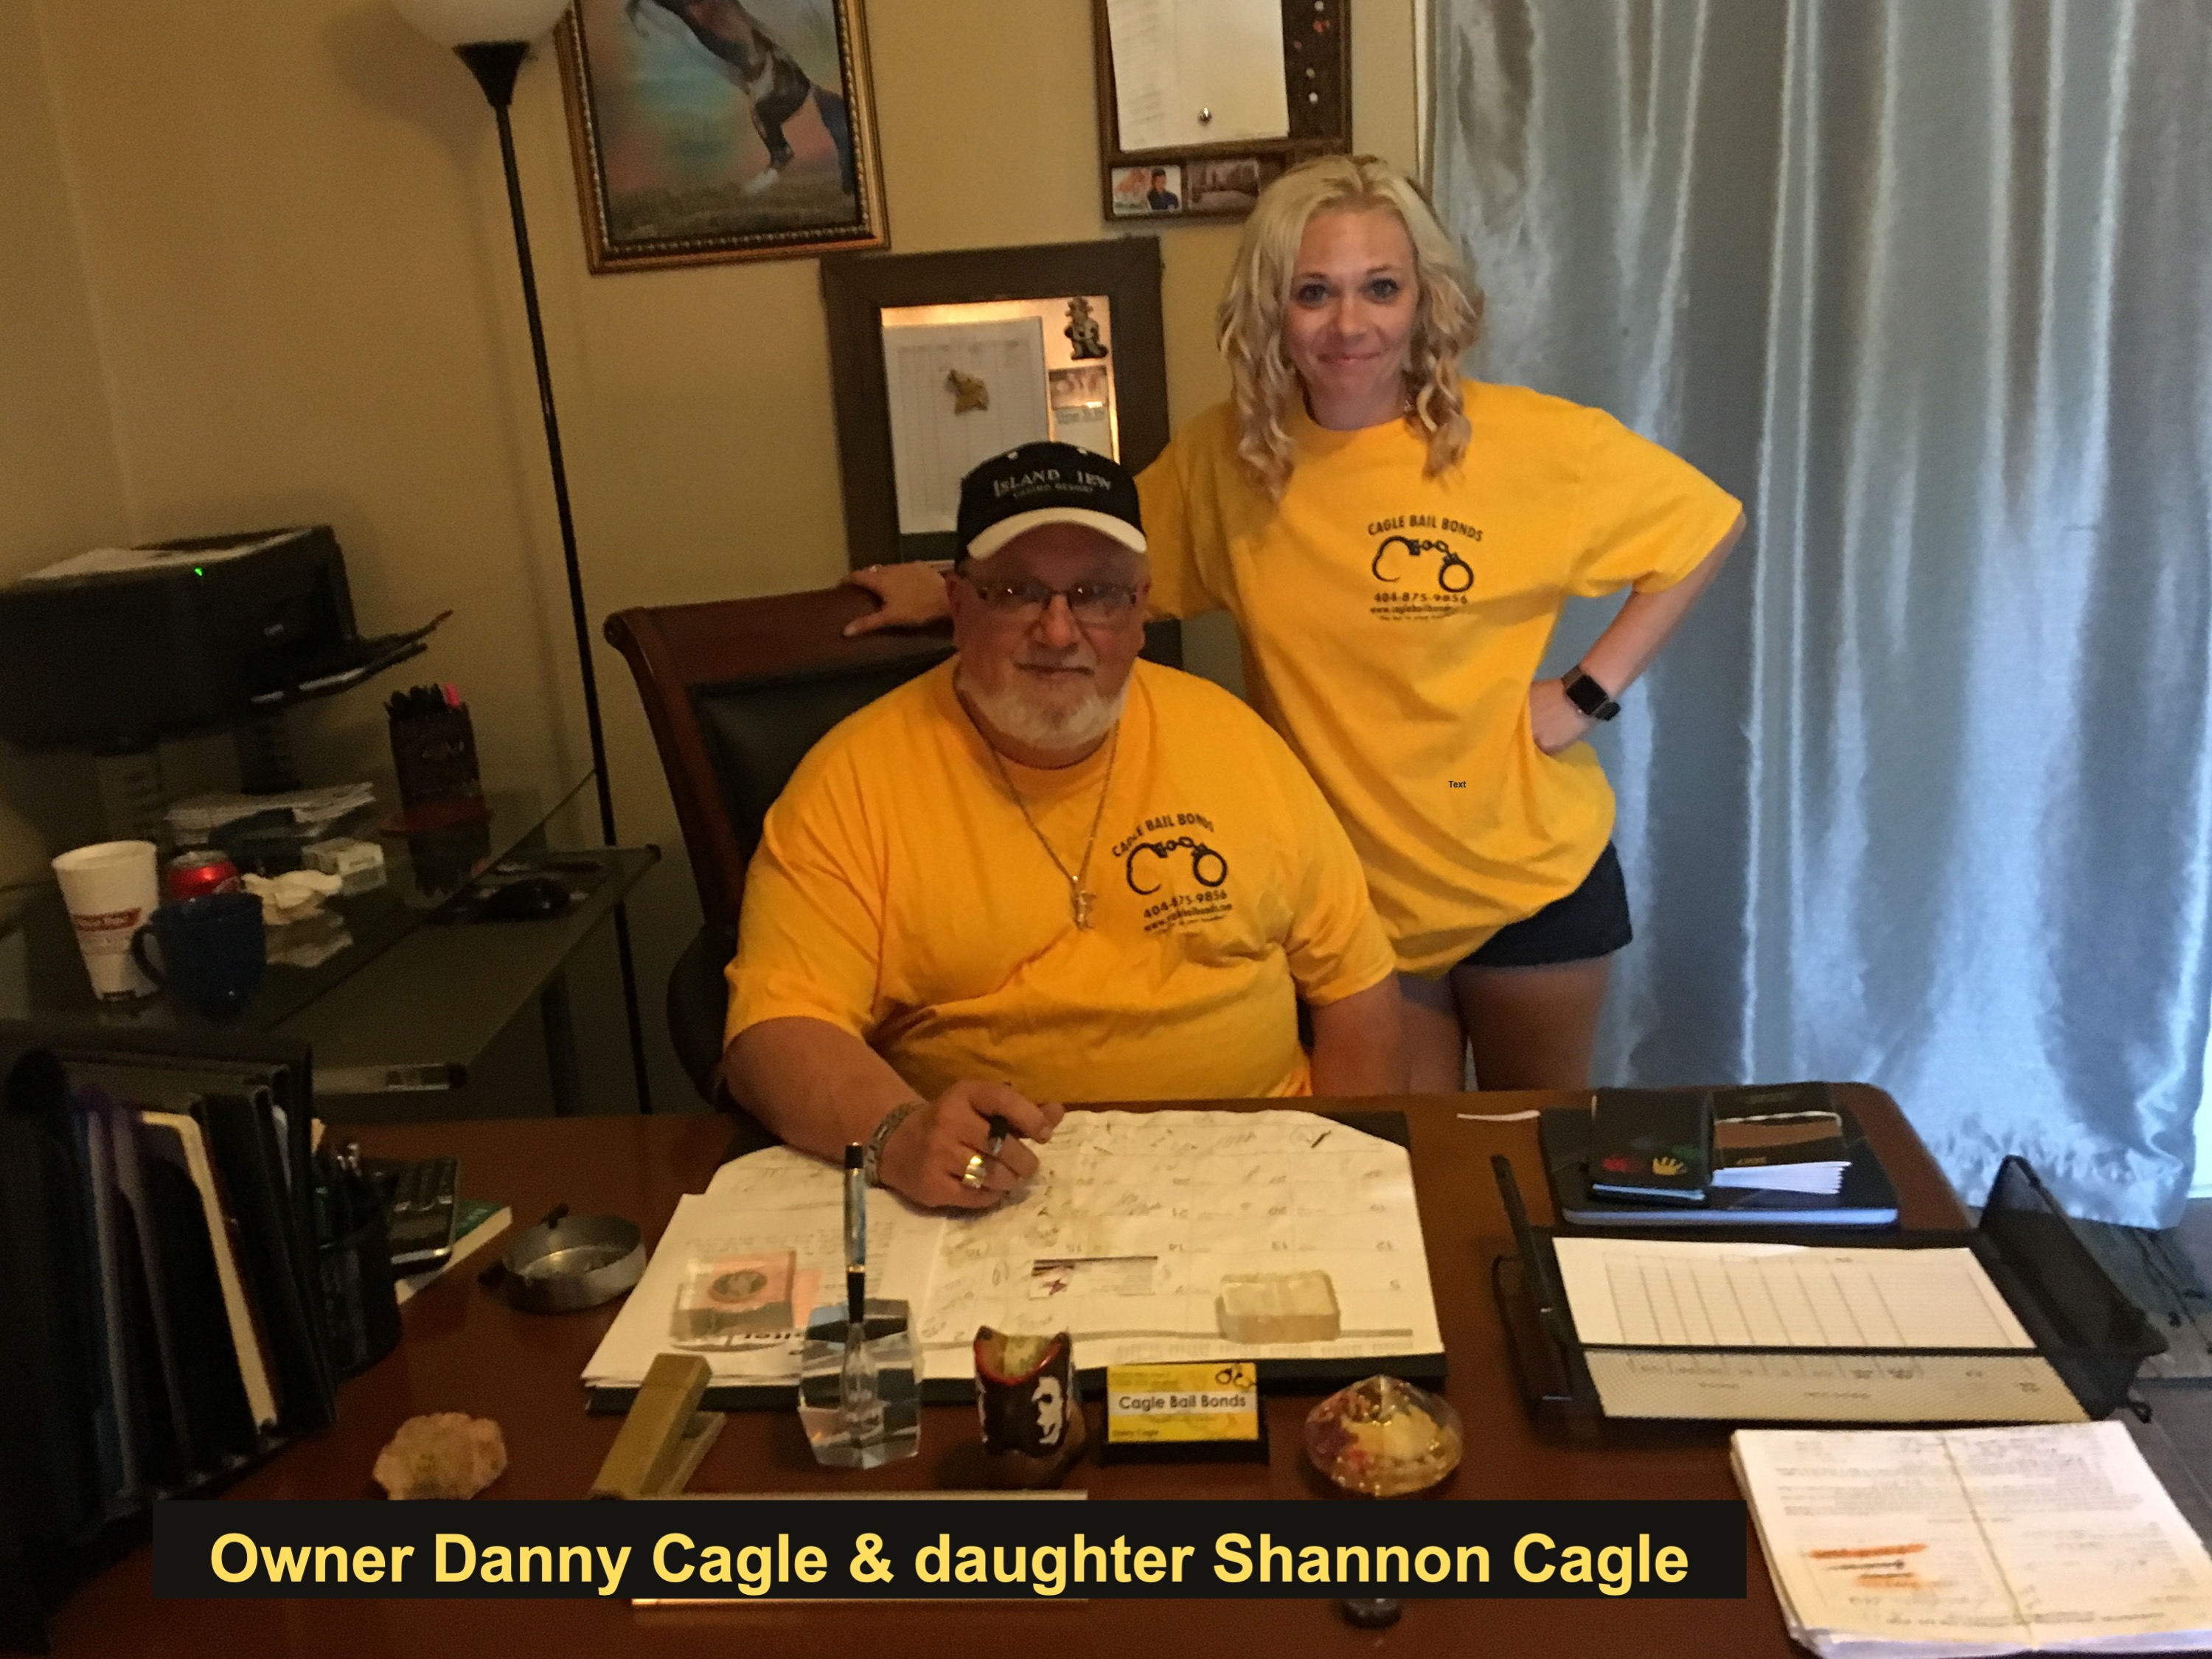 Owner Danny Cagle